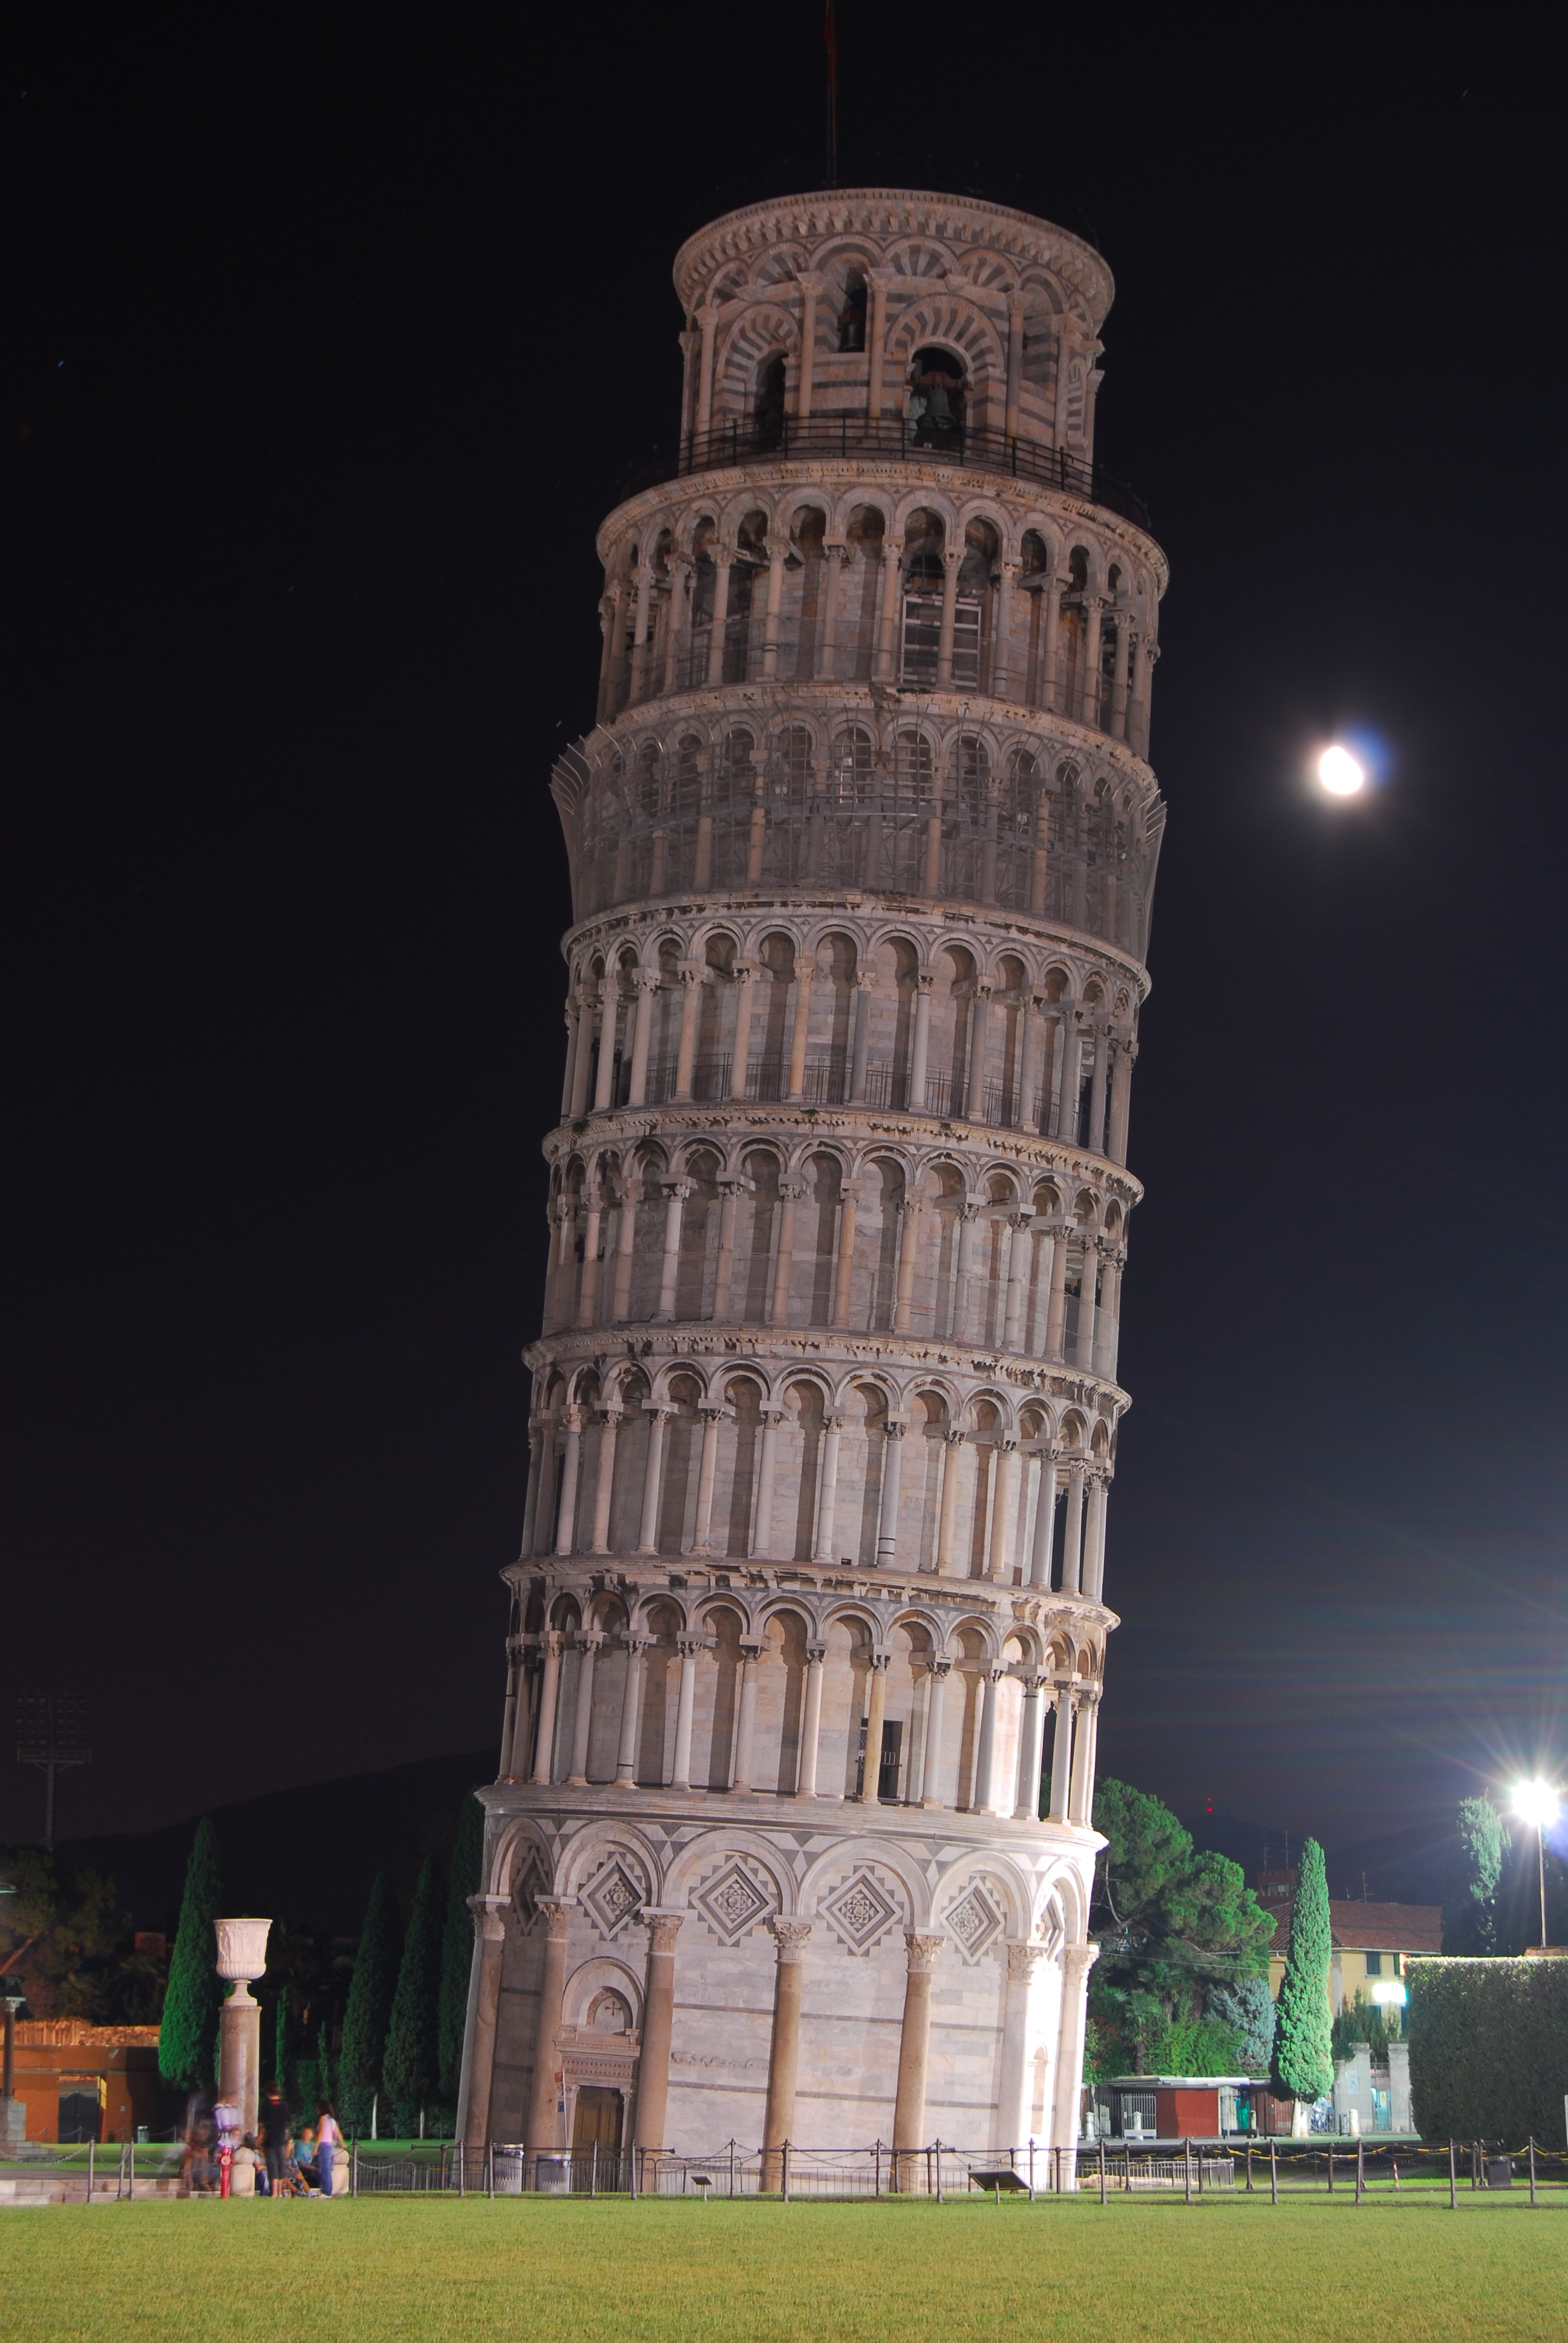 http://upload.wikimedia.org/wikipedia/commons/e/ee/Leaning_Tower_of_Pisa_JD03092007.jpg